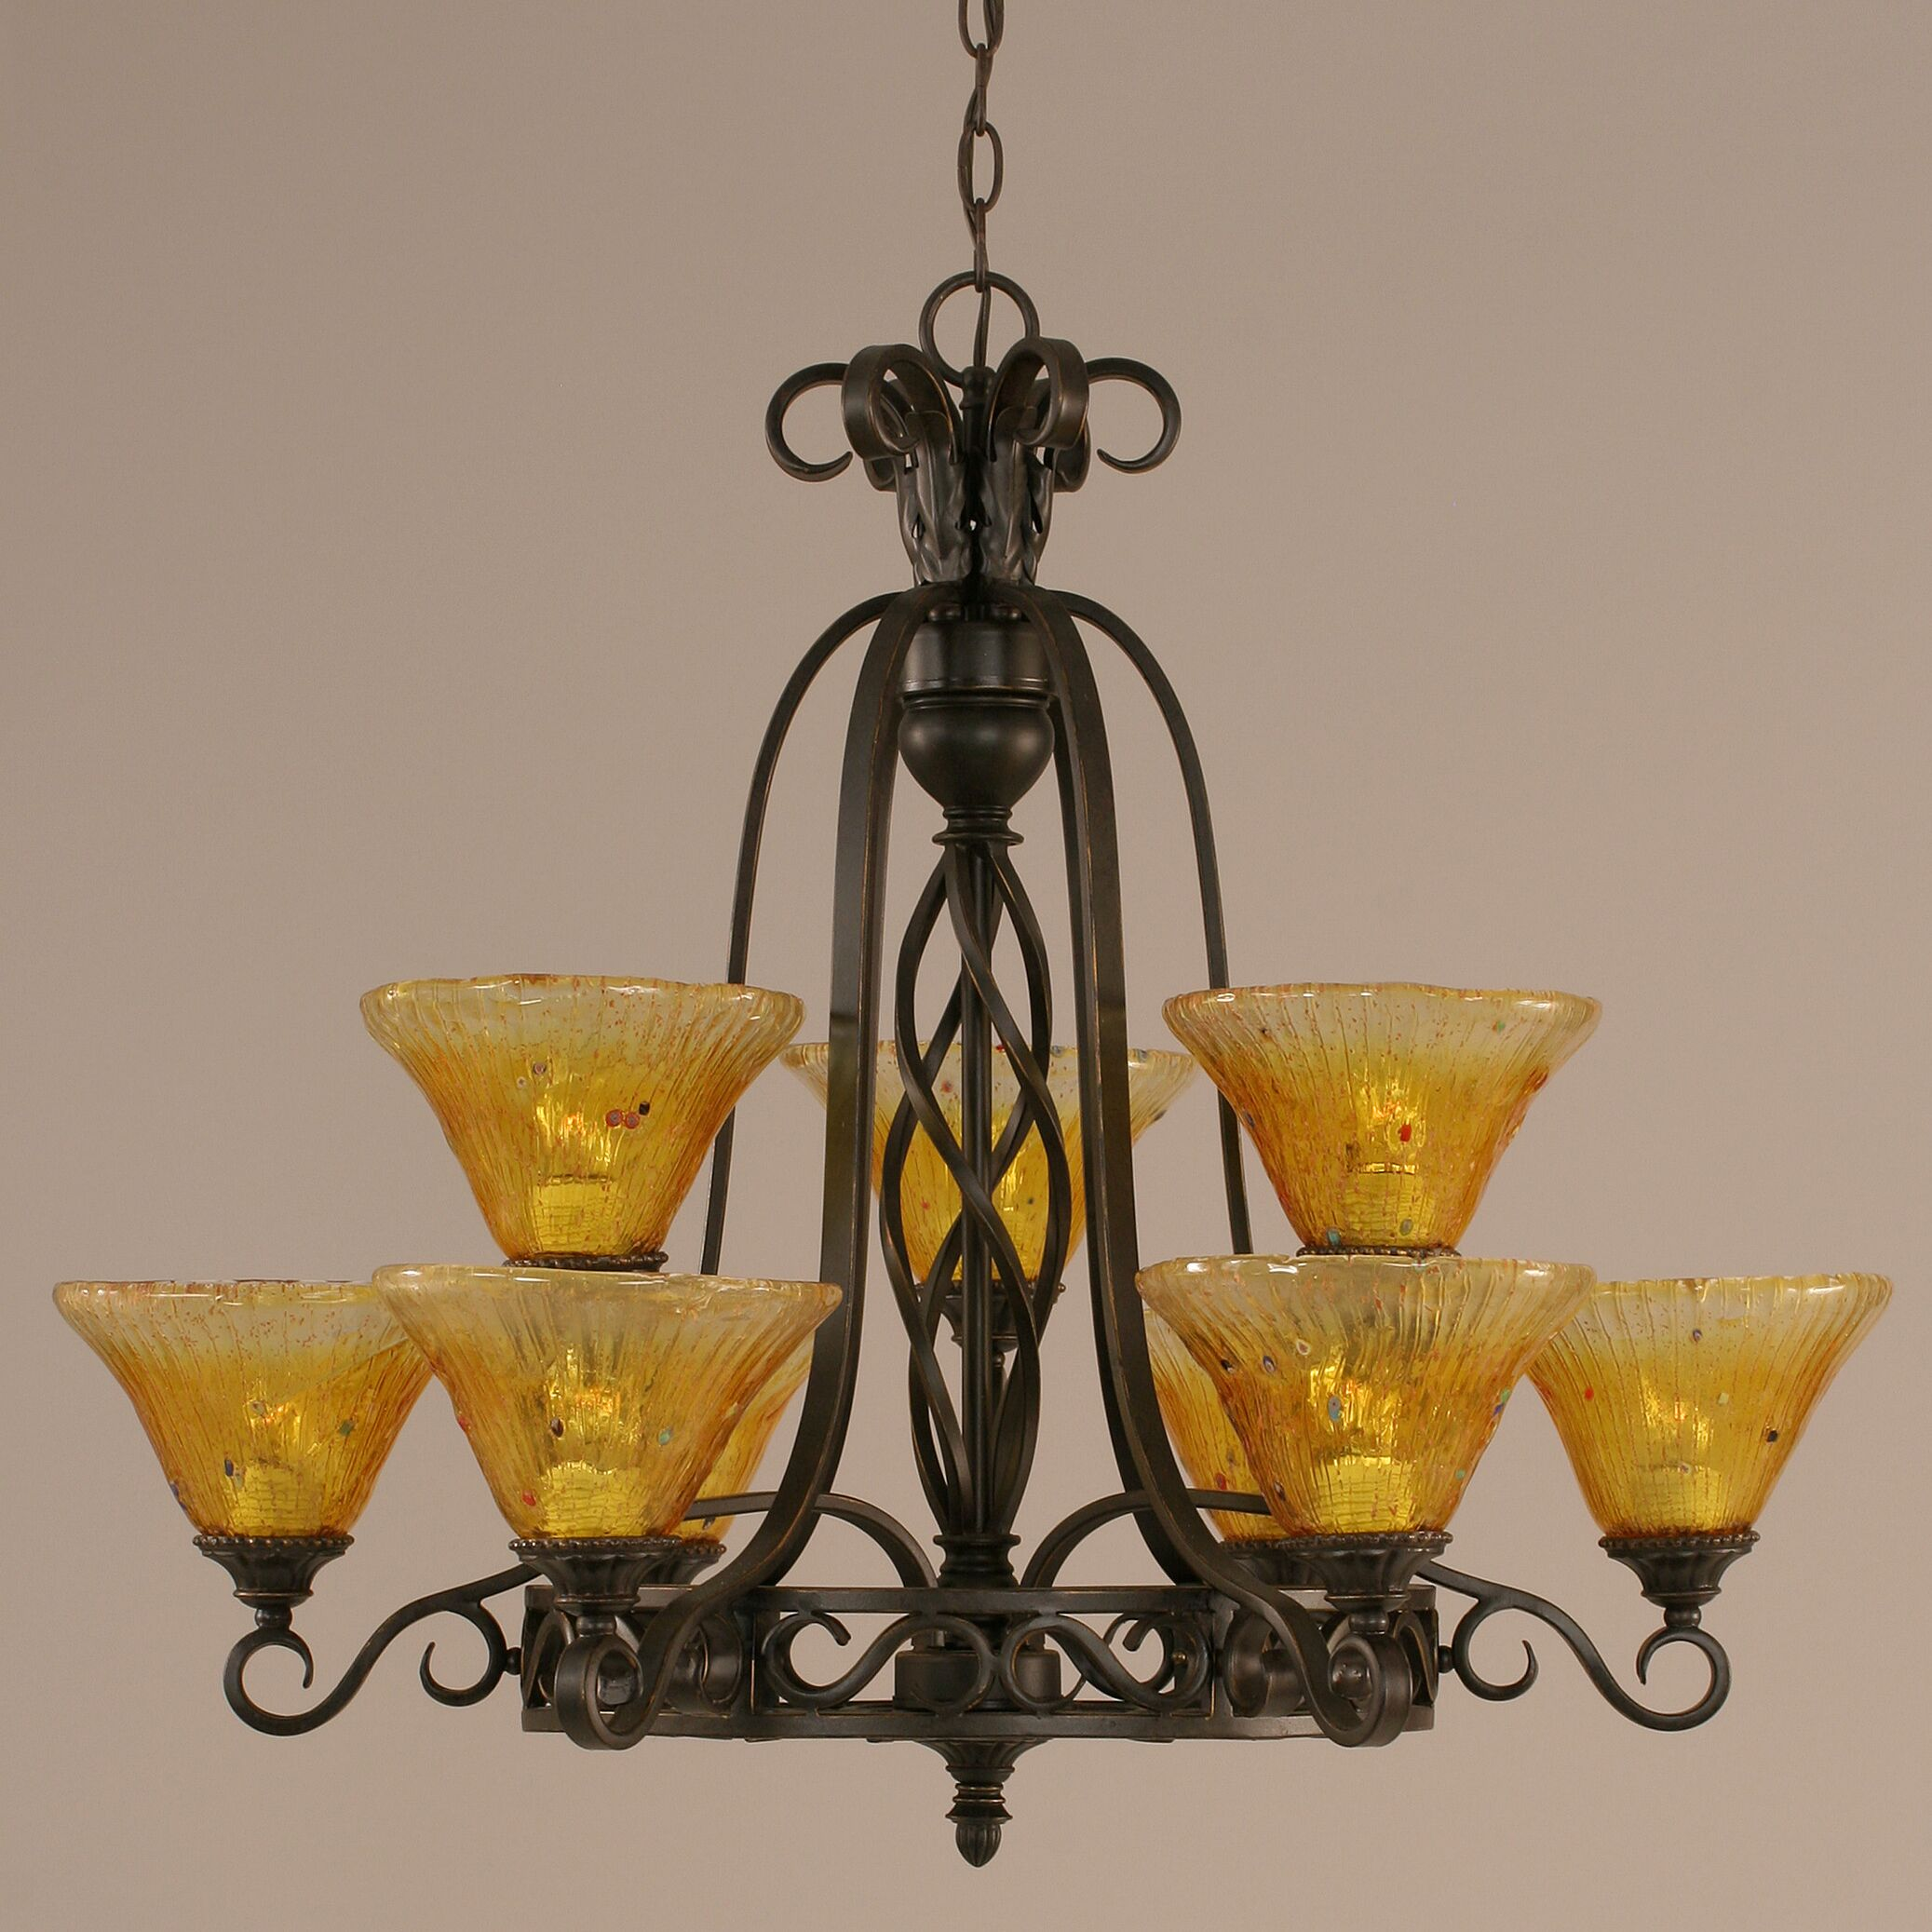 Pierro 9-Light Shaded Chandelier Shade: Gold Champagne Crystal Glass